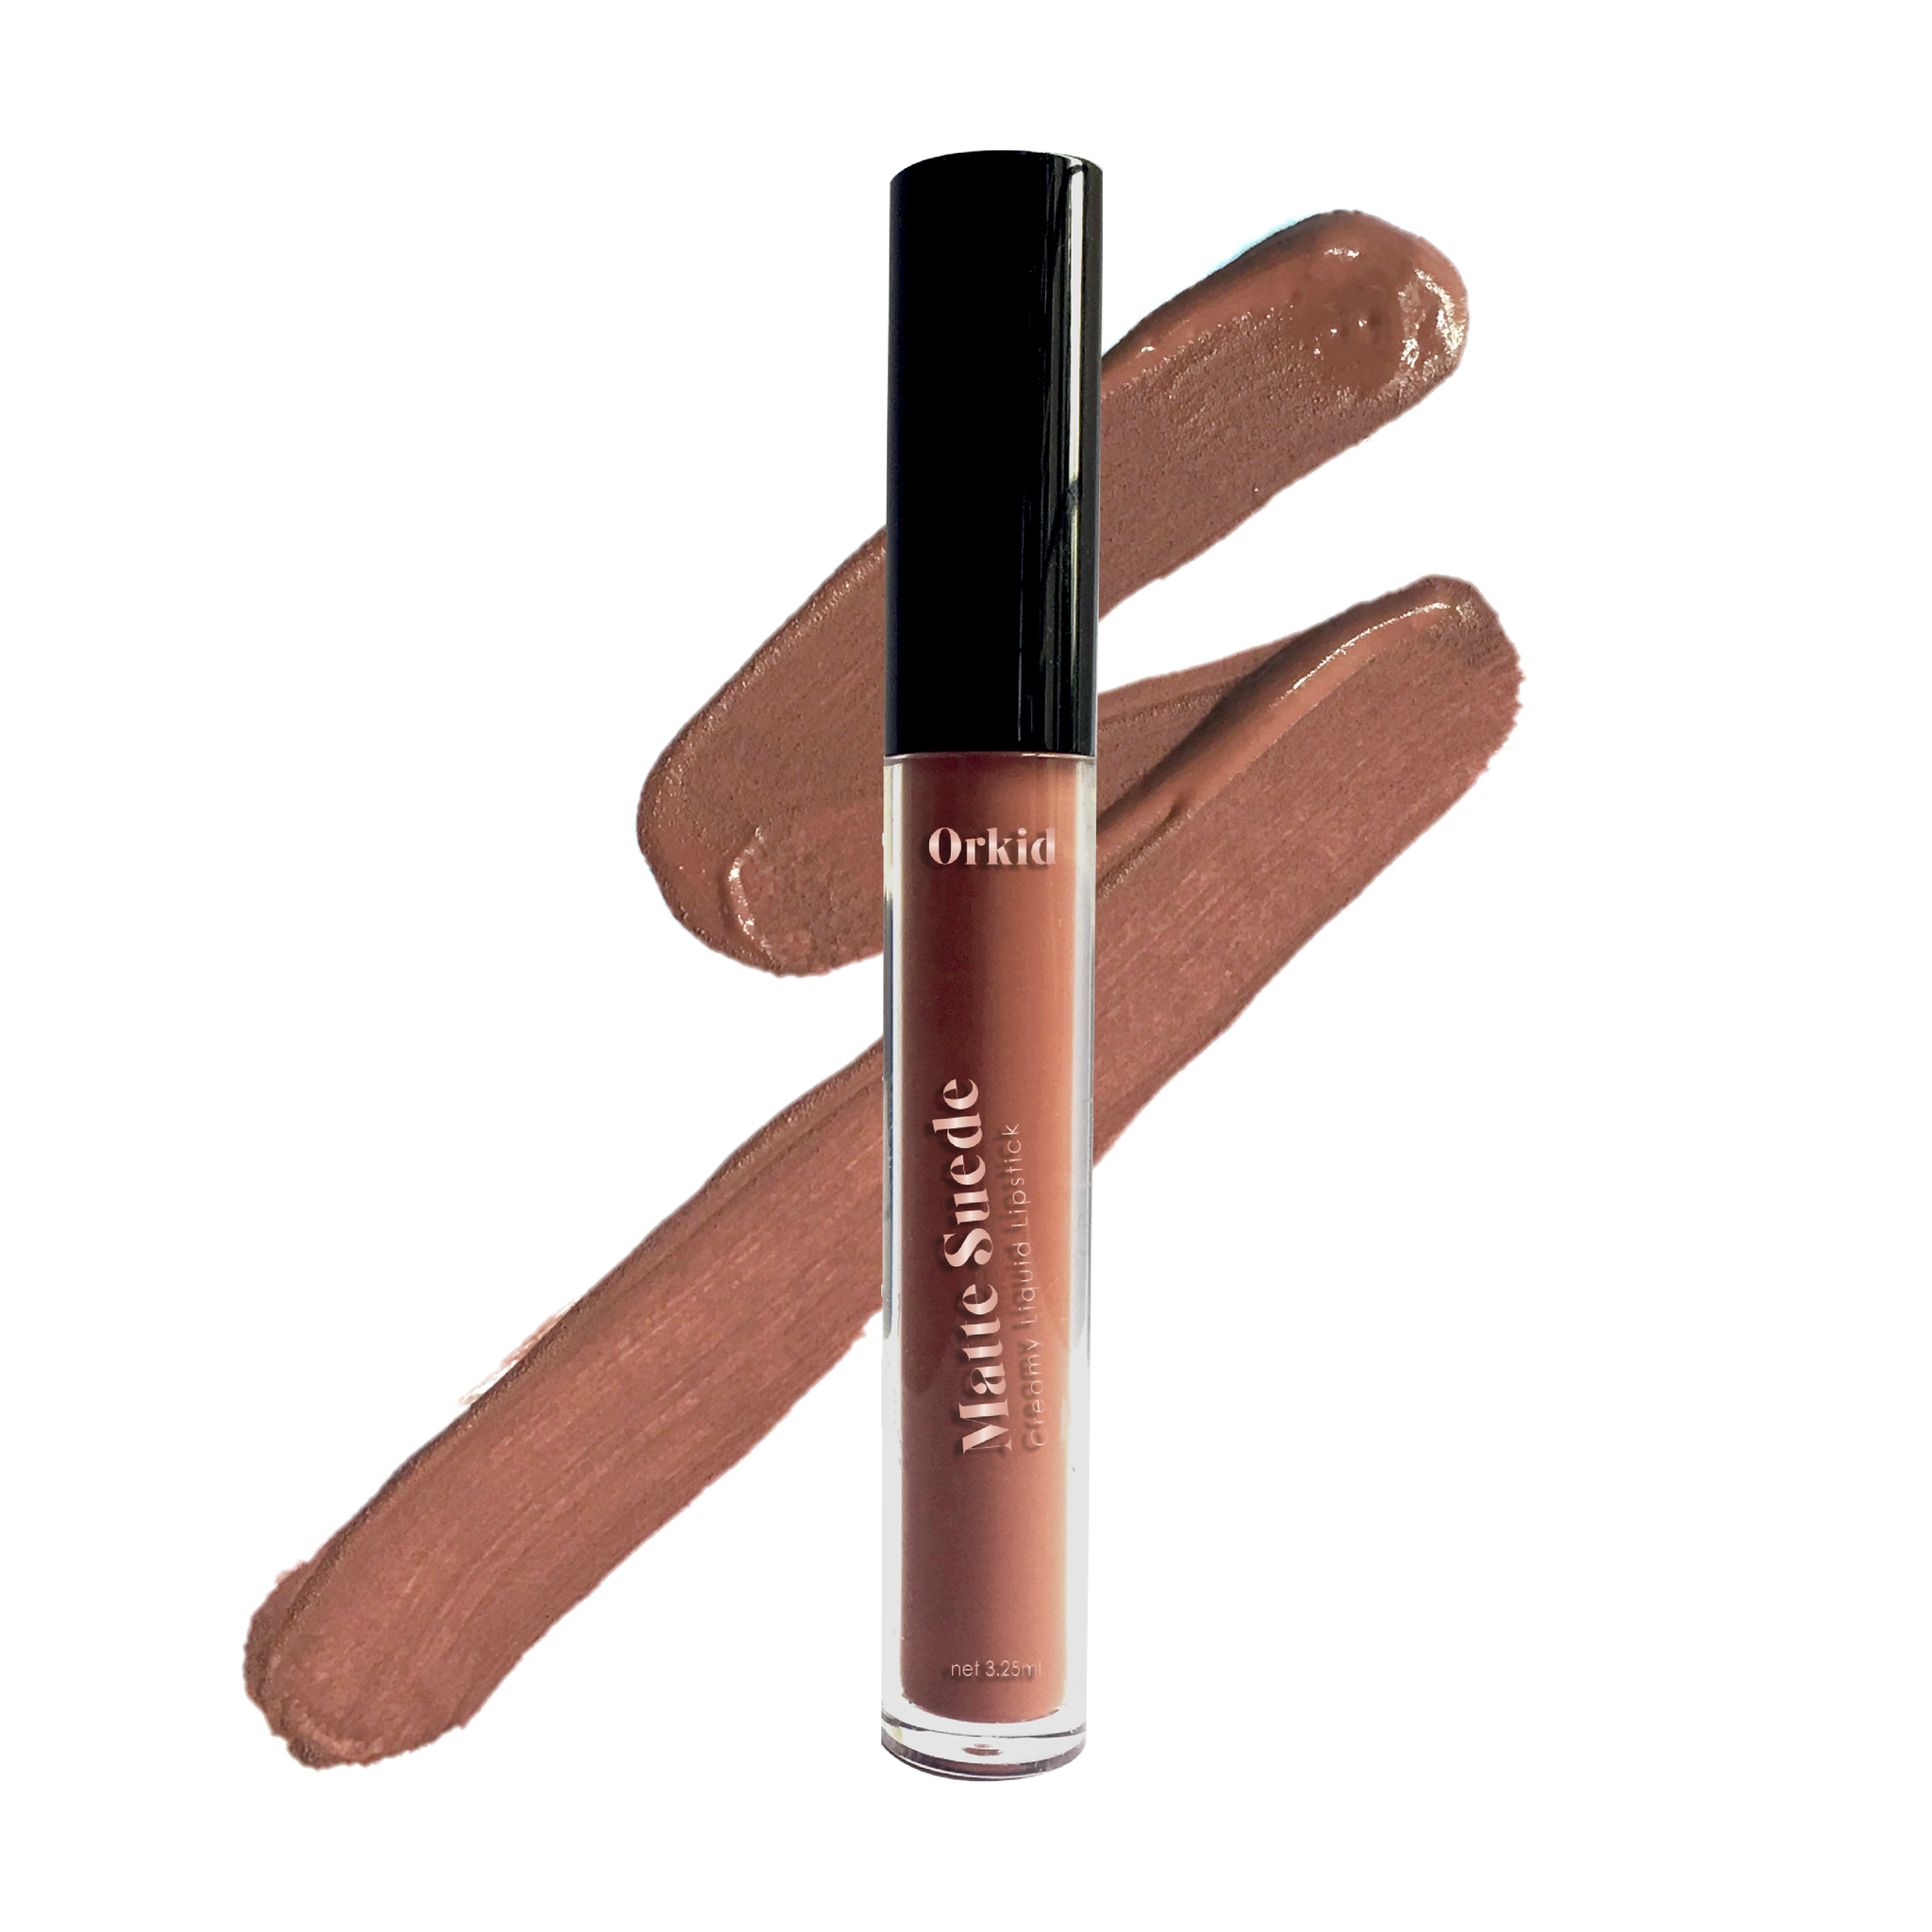 Orkid Cosmetics Liquid Lipstick - Turnt